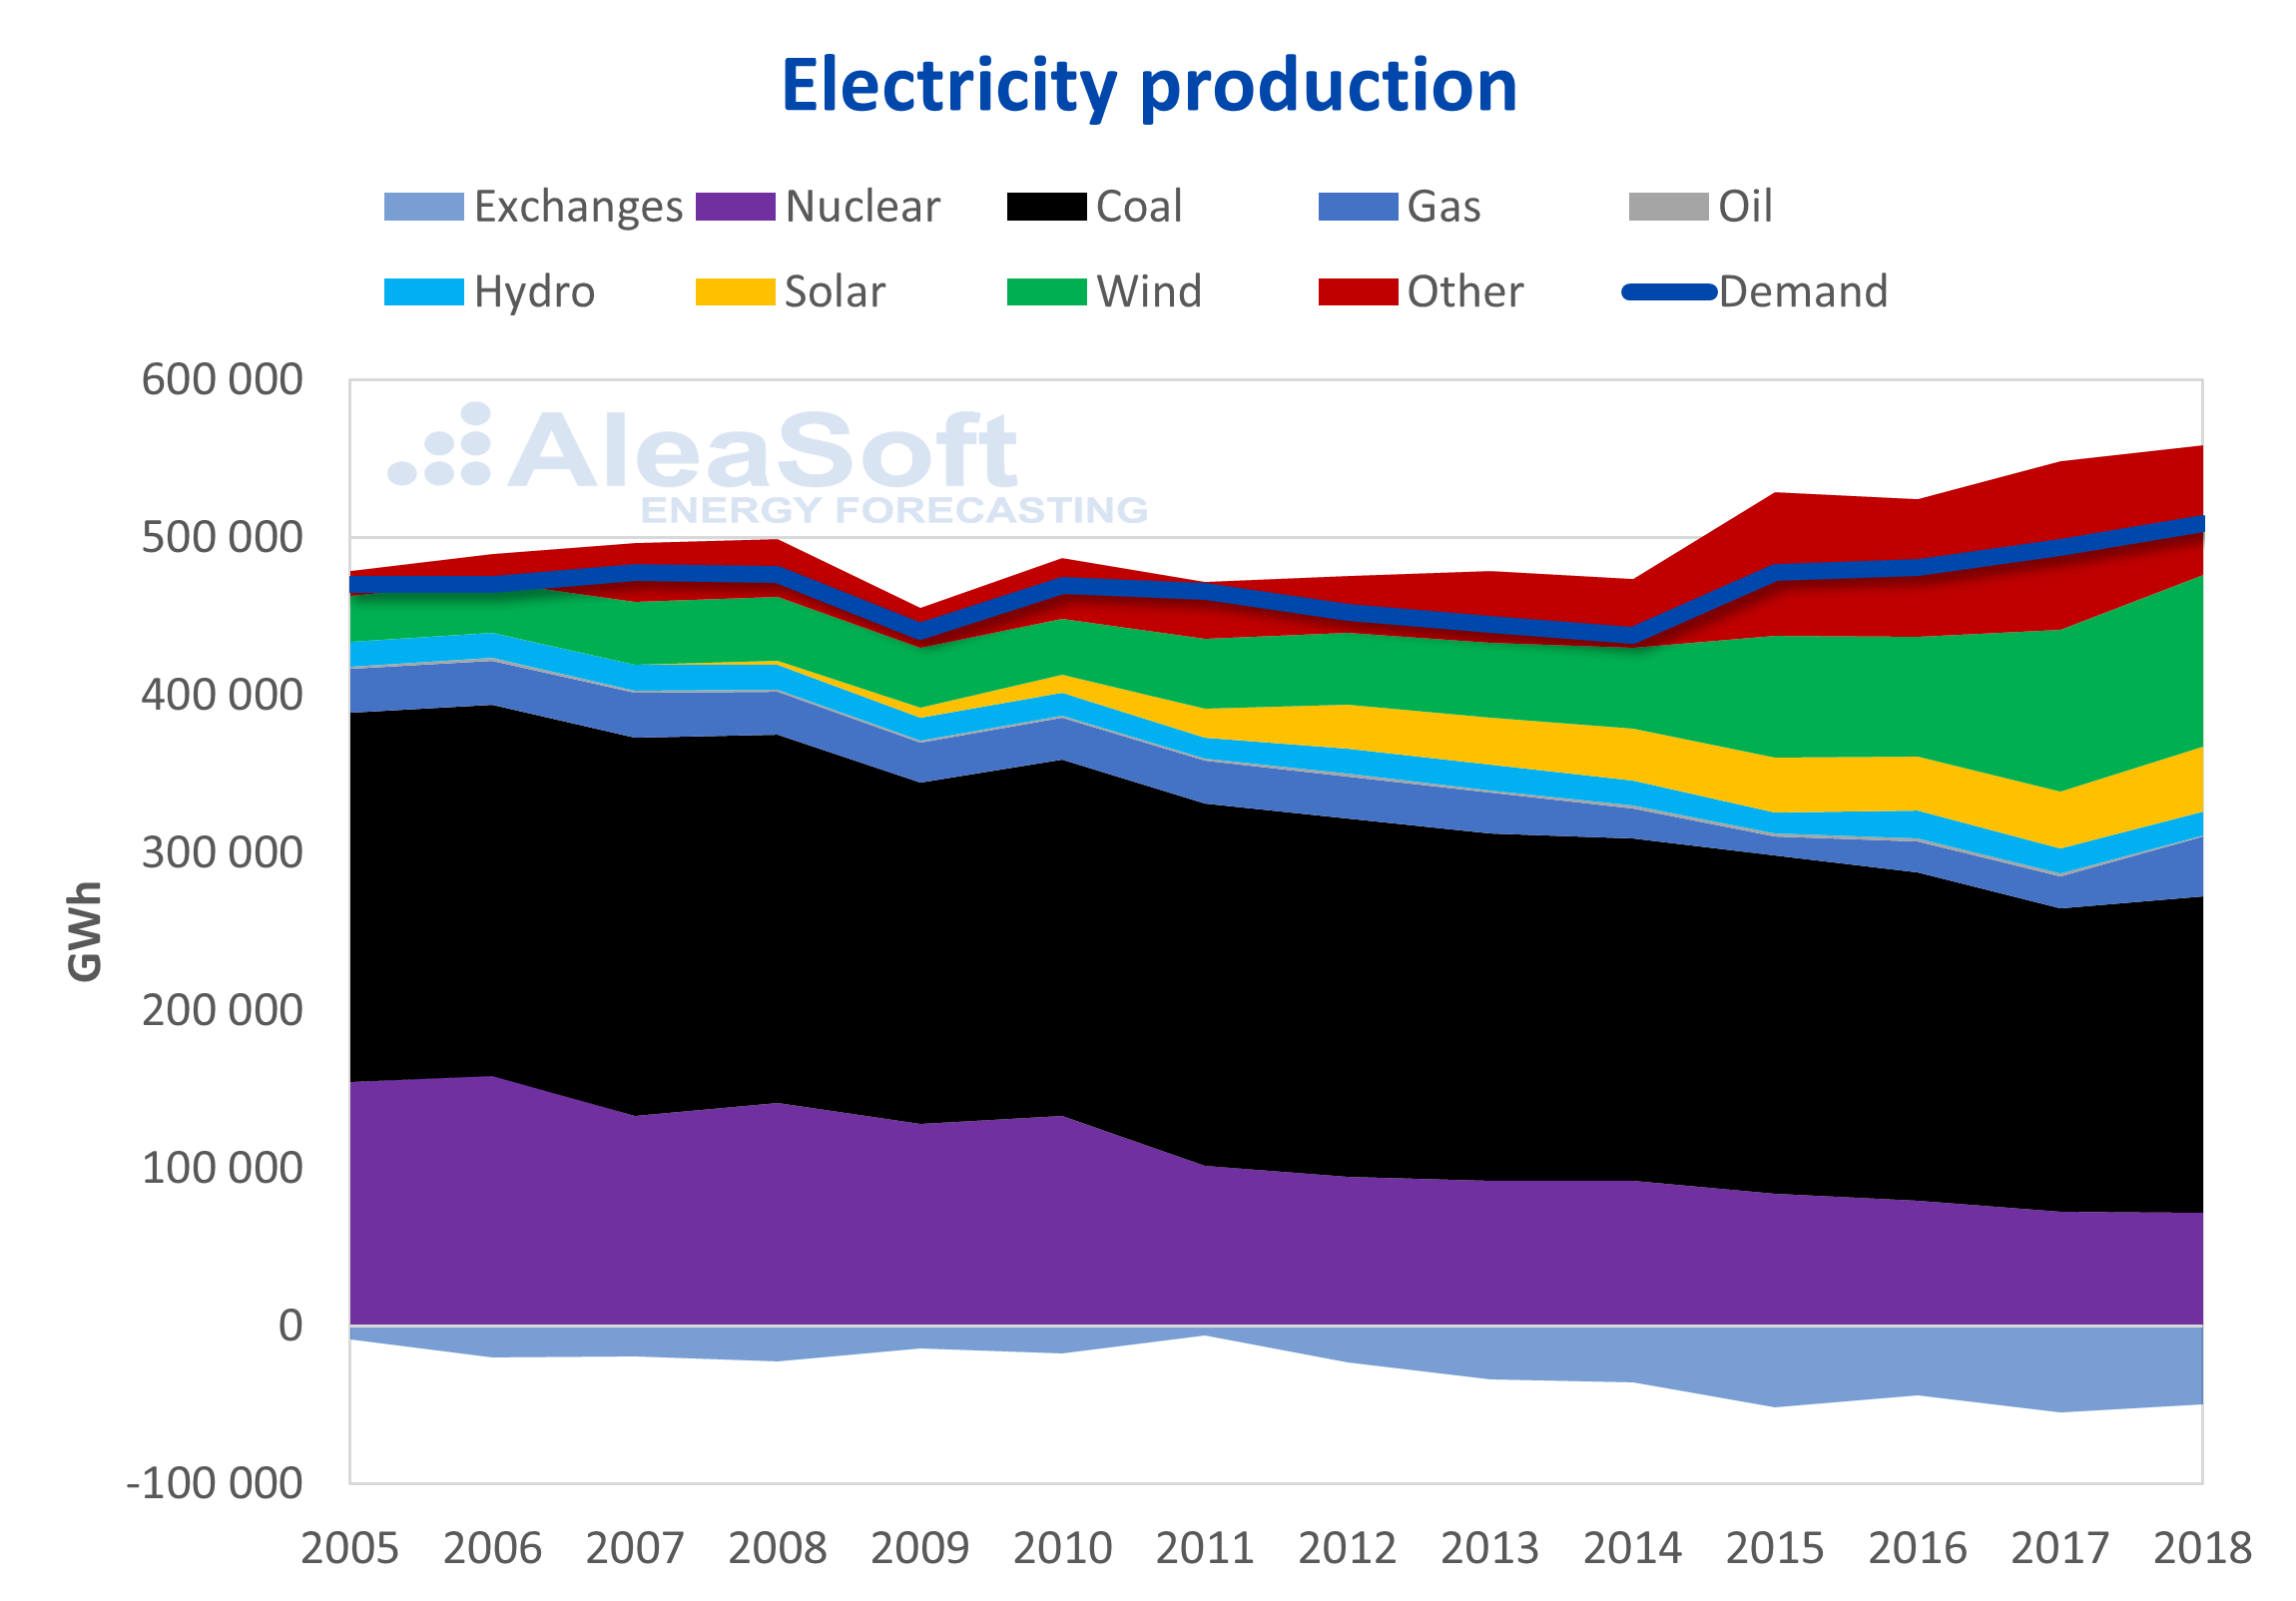 AleaSoft - Germany electricity production